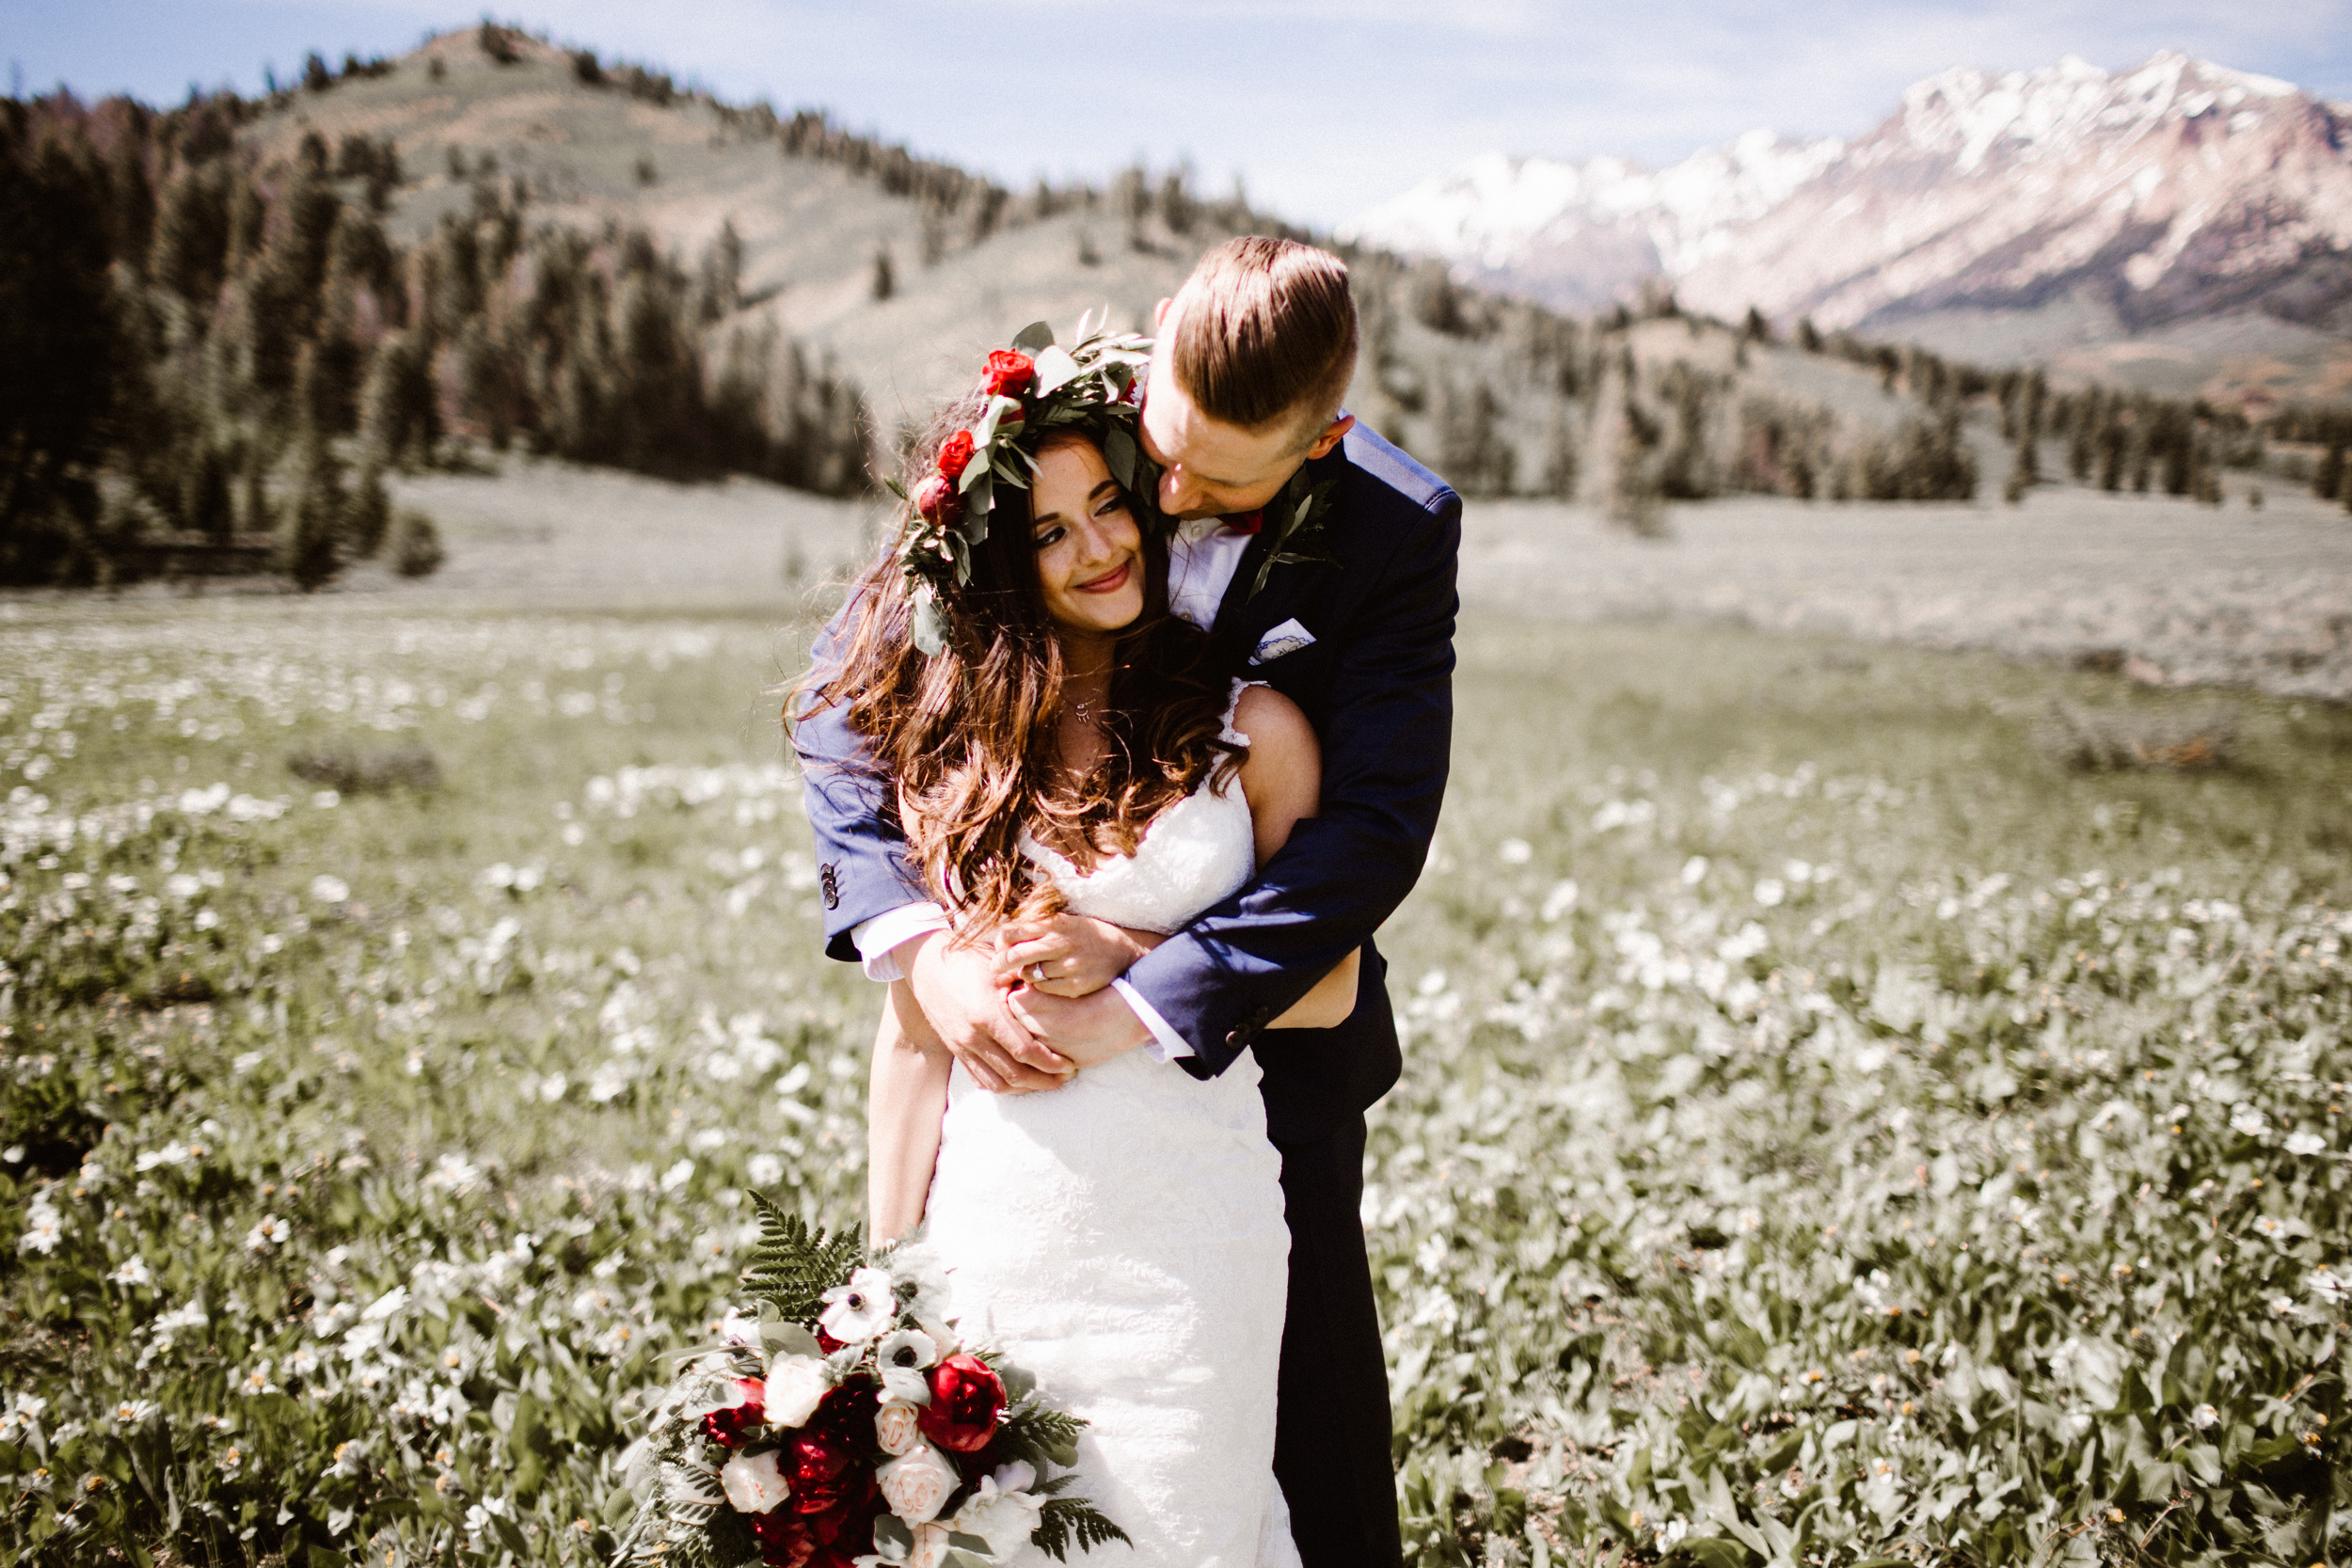 Sun_valley_Wedding_GalenaLodge-59.jpg